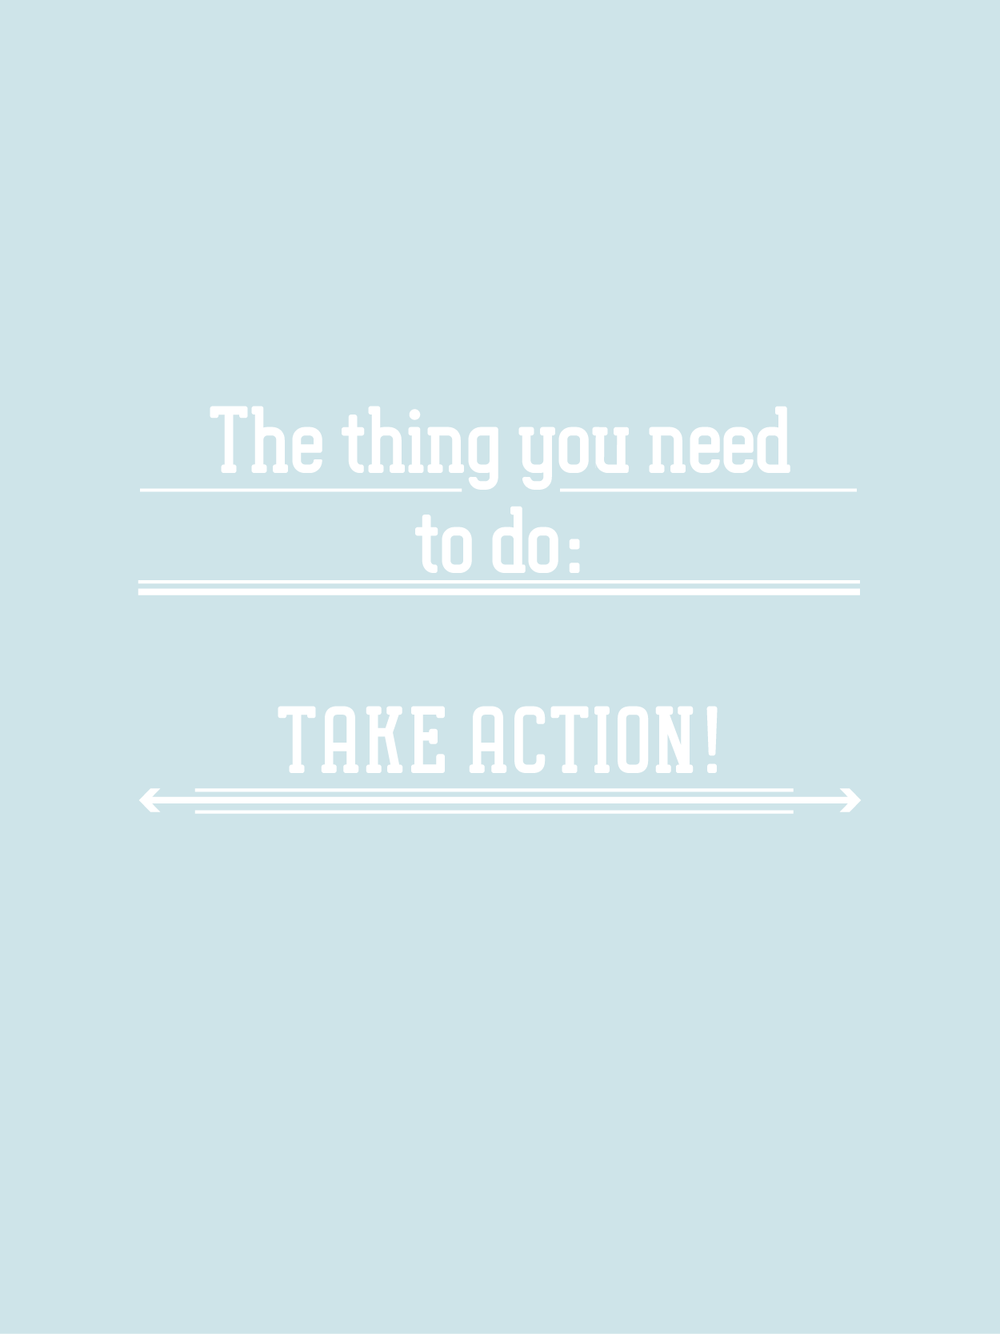 the BIZ school for creatives; You must take action! read the full blog post at www.kerstinpressler.com/blog